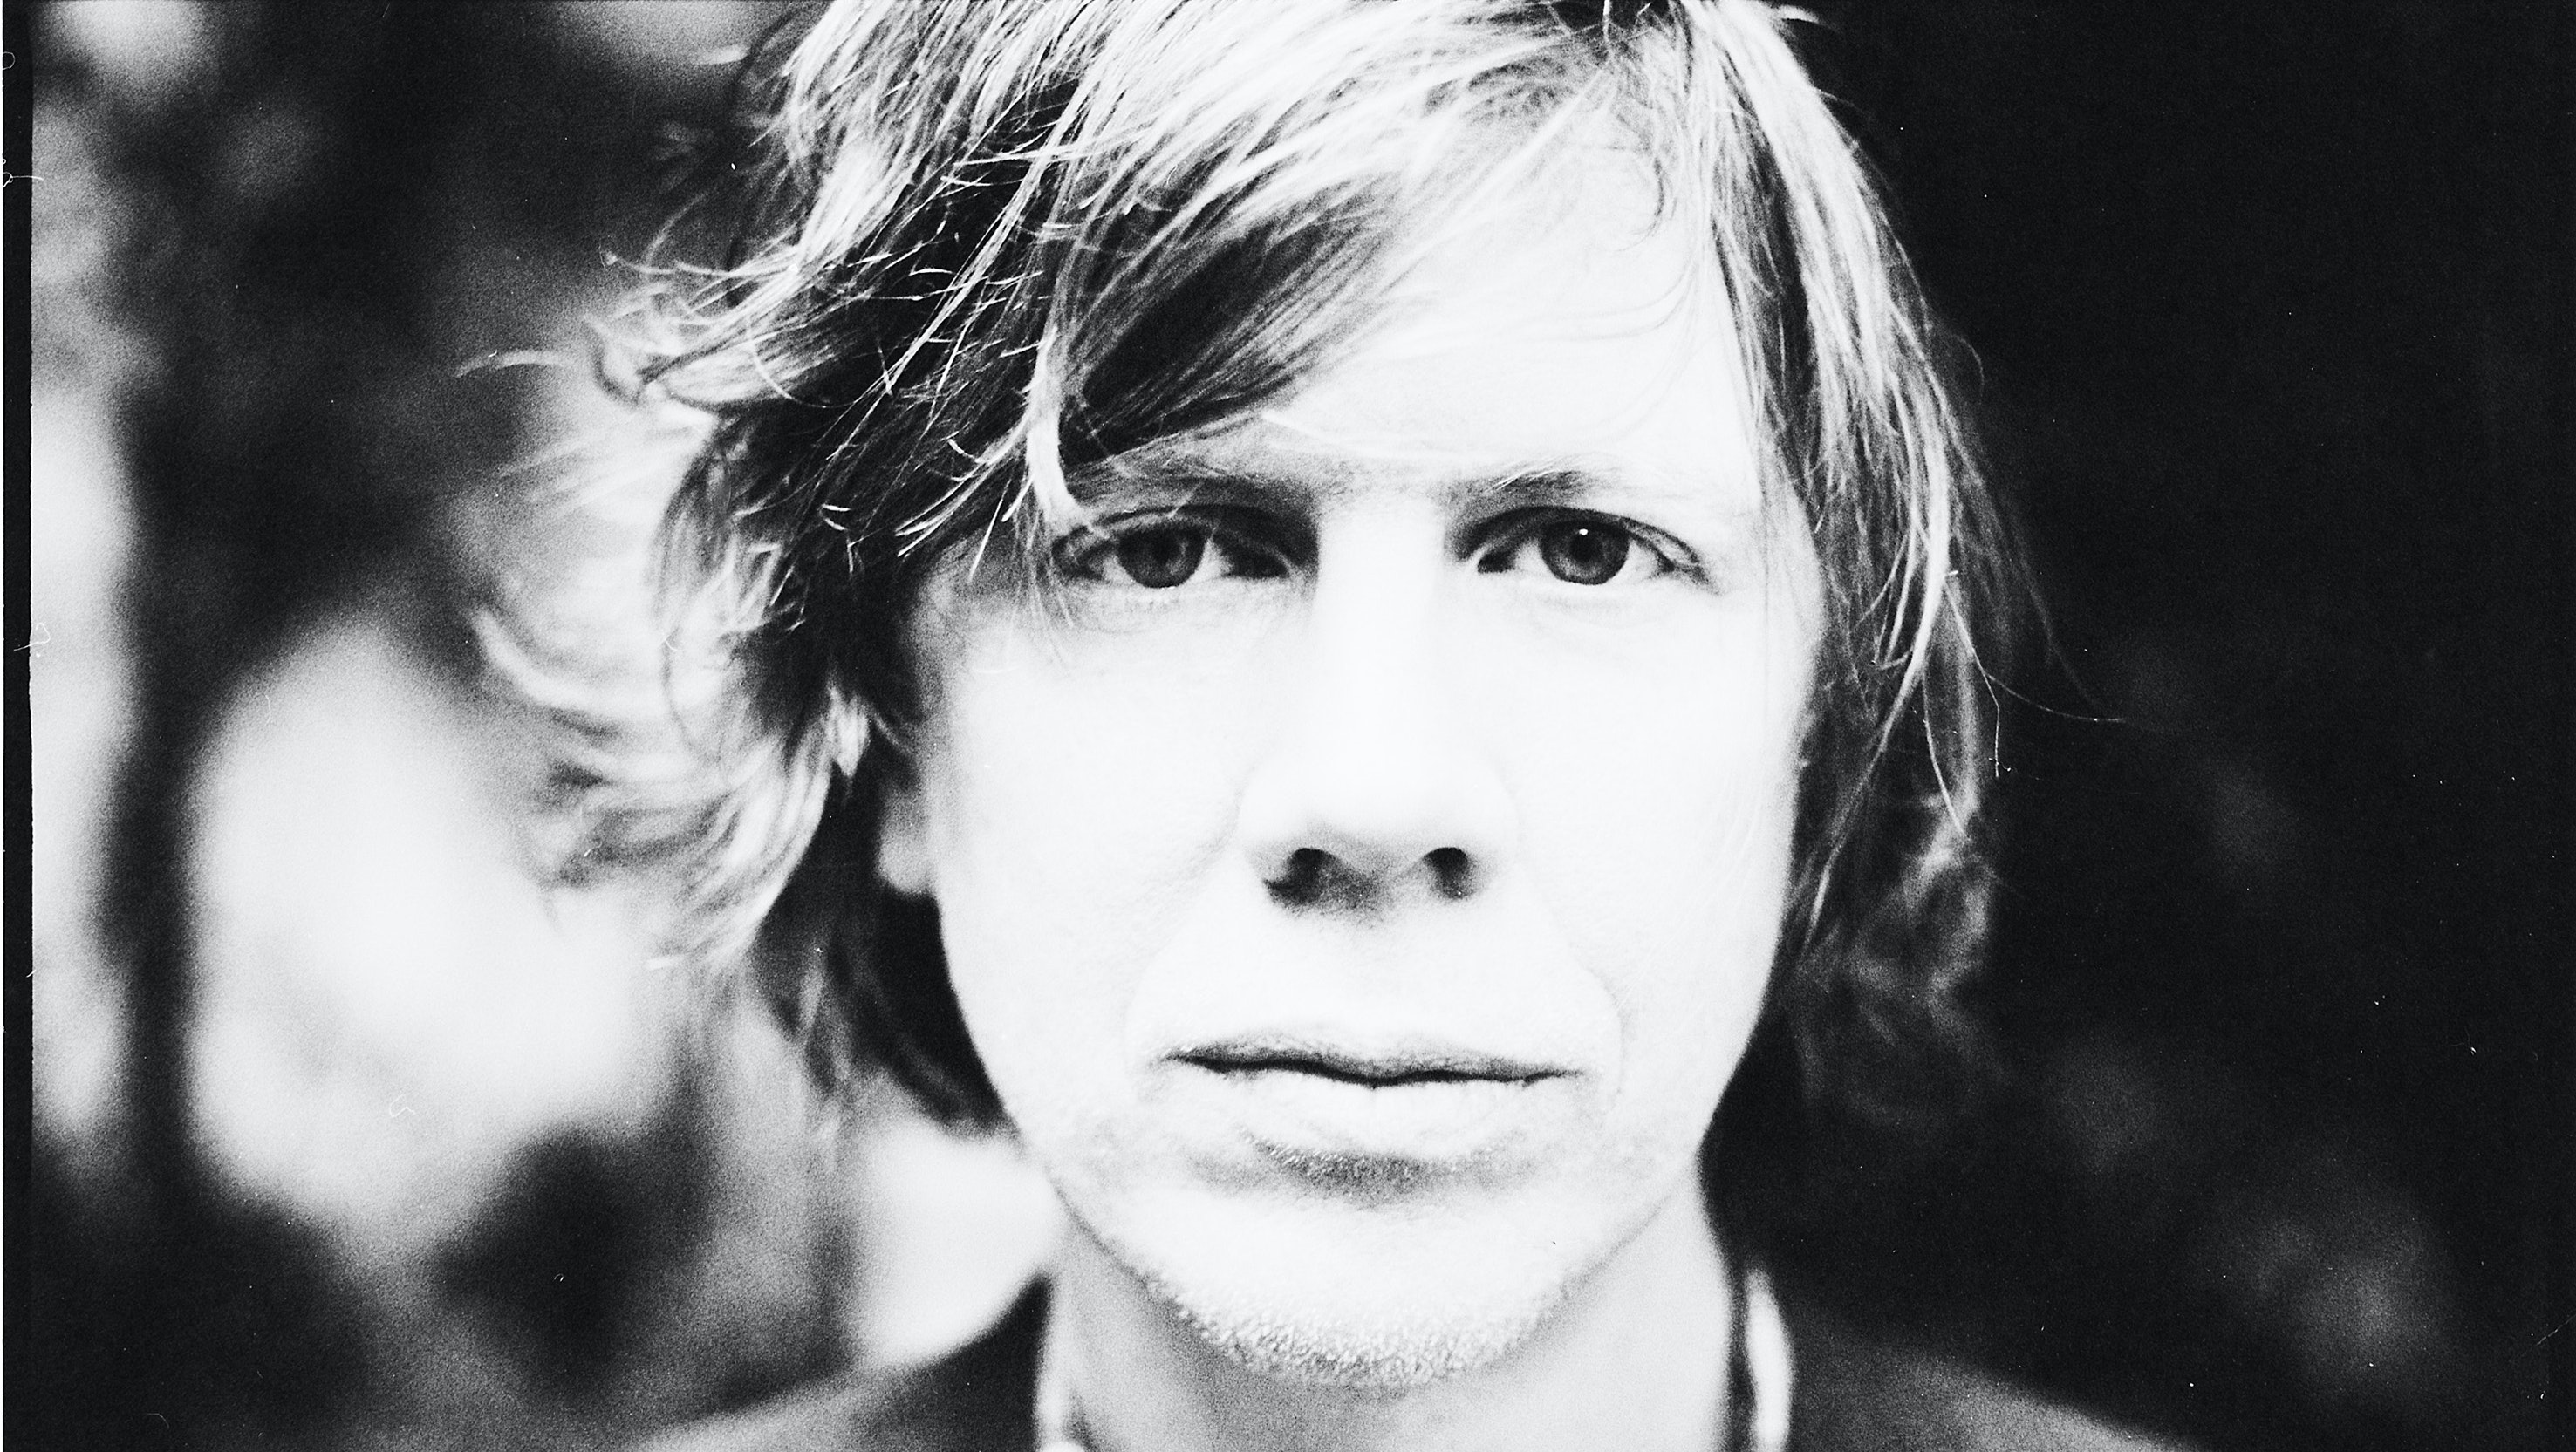 A black and white photo of Thurston Moore.